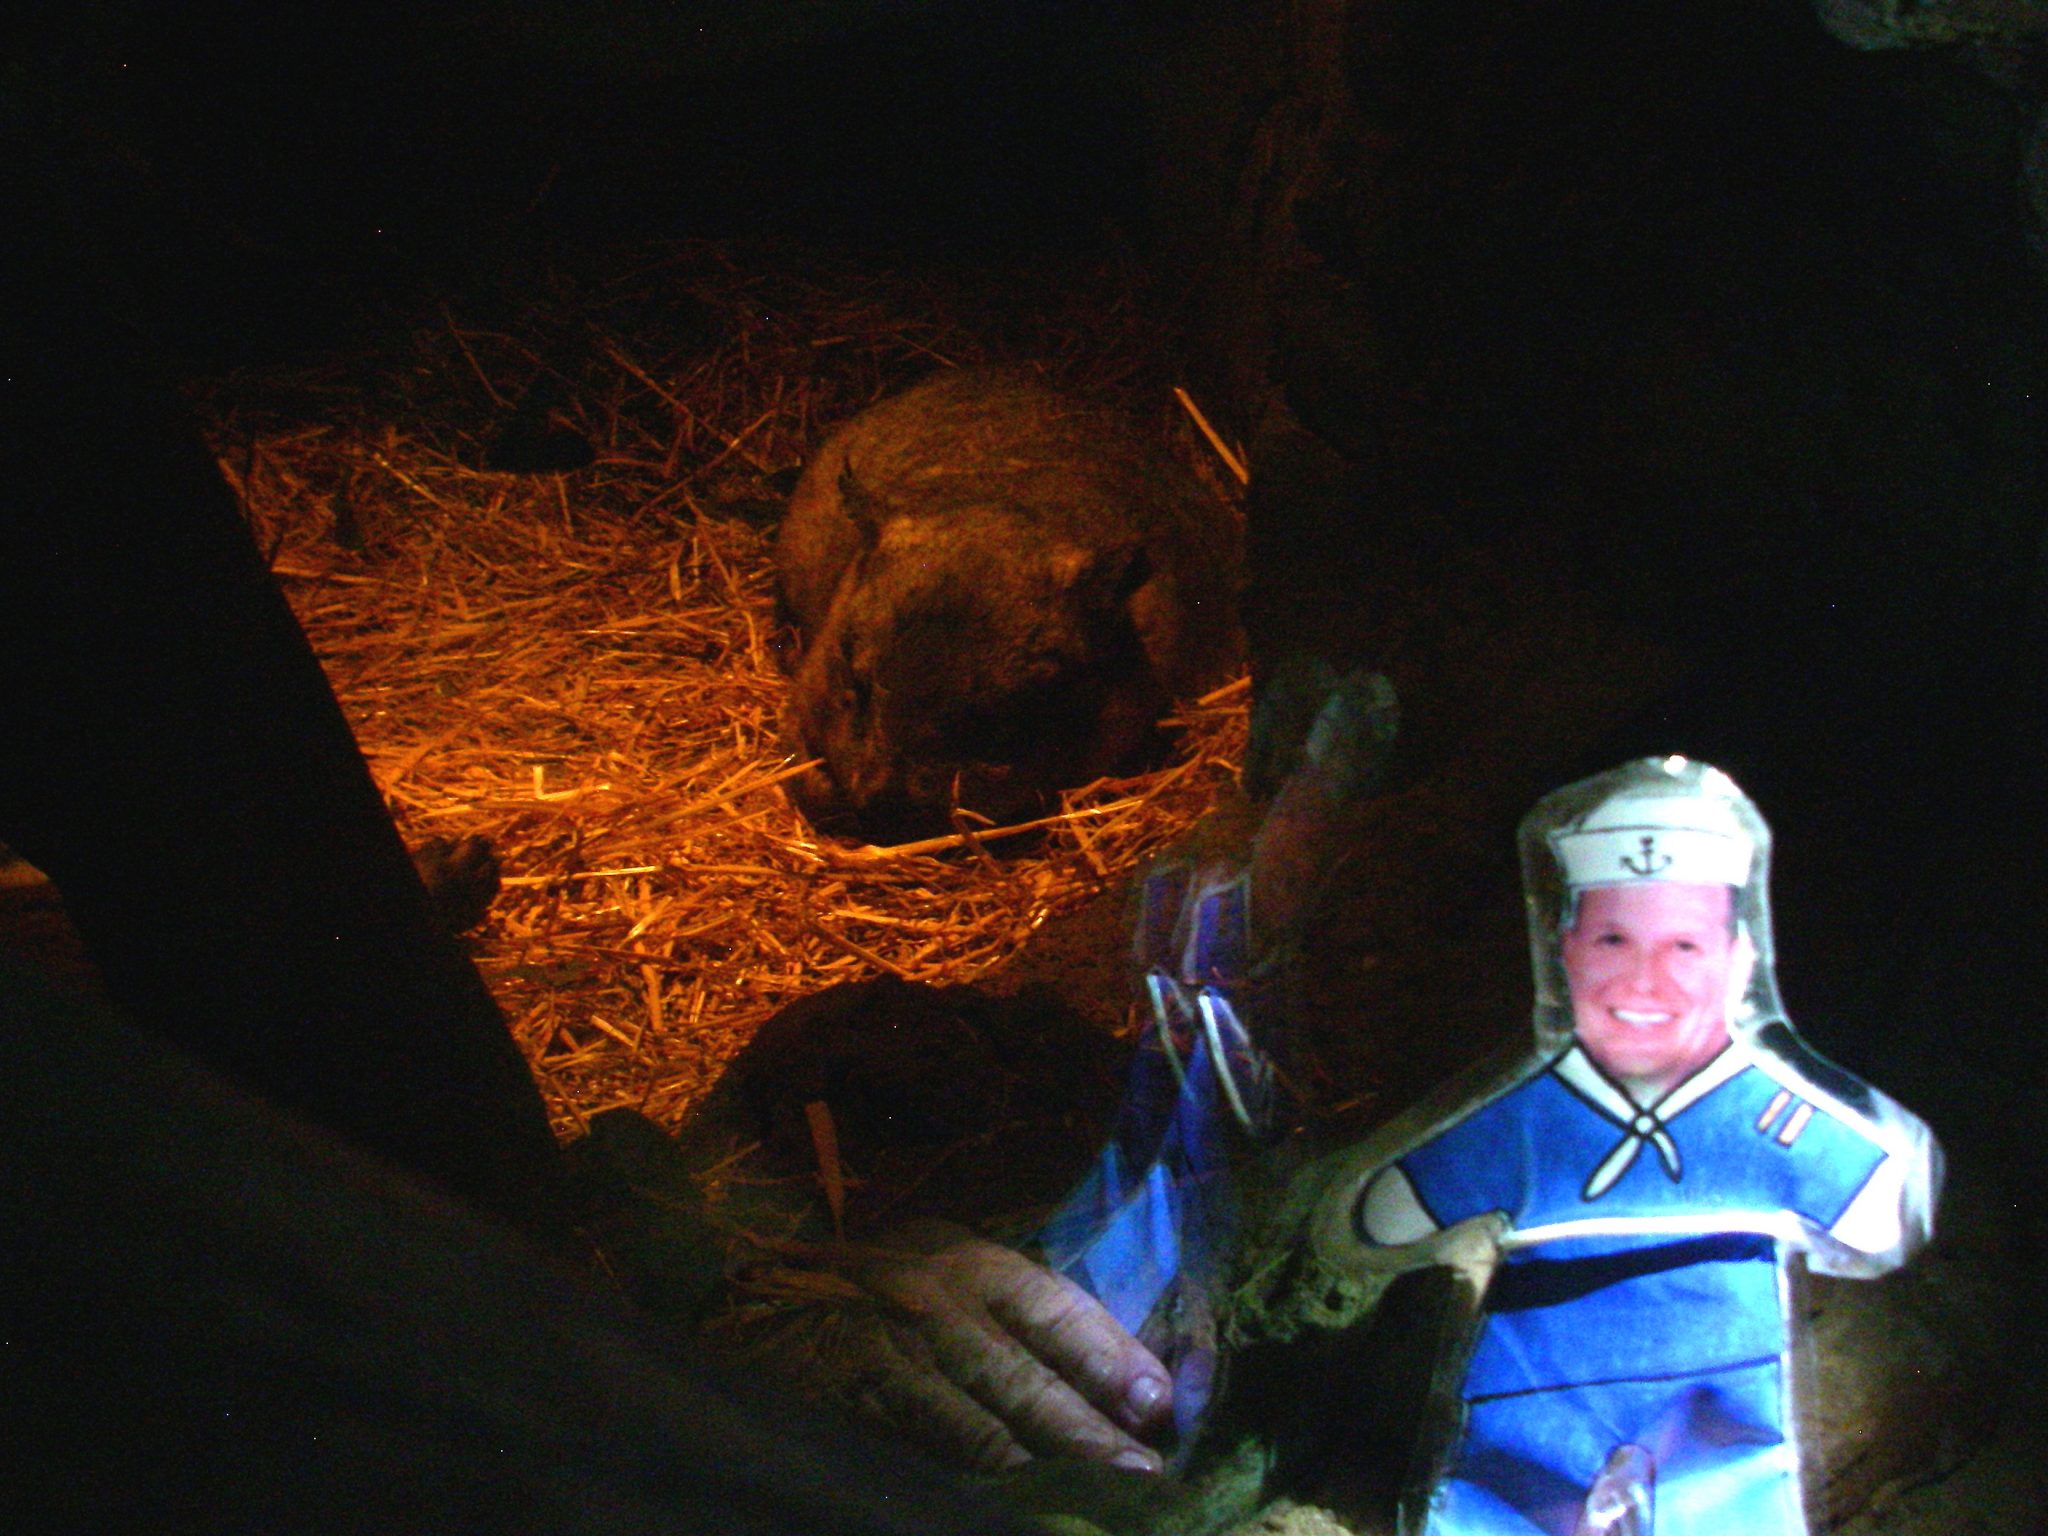 60.9.1. Flat Mr. Davis saw a snoozing wombat at the Toranga Zoo in Sydney